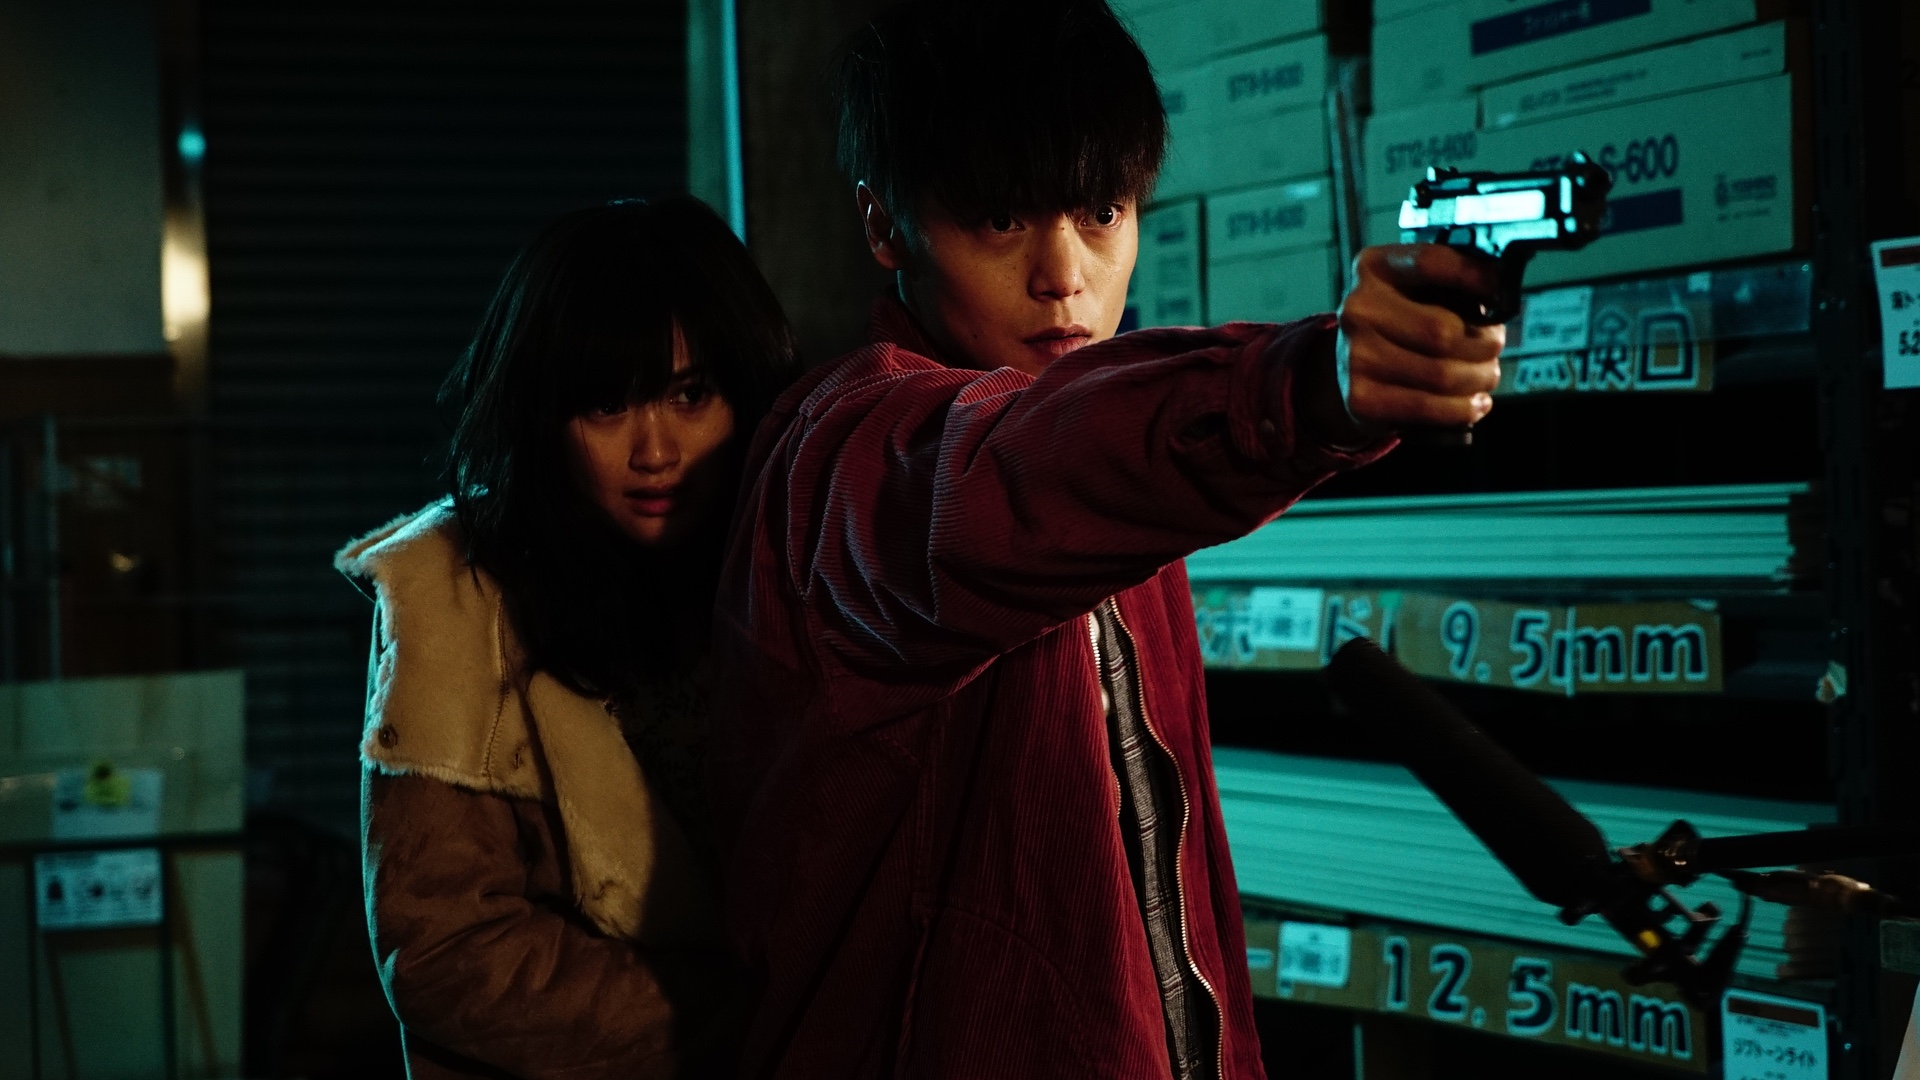 Wild New Trailer for Takashi Miike's 'First Love' Reminds of 'True Romance' and 'Baby Driver' - Bloody Disgusting